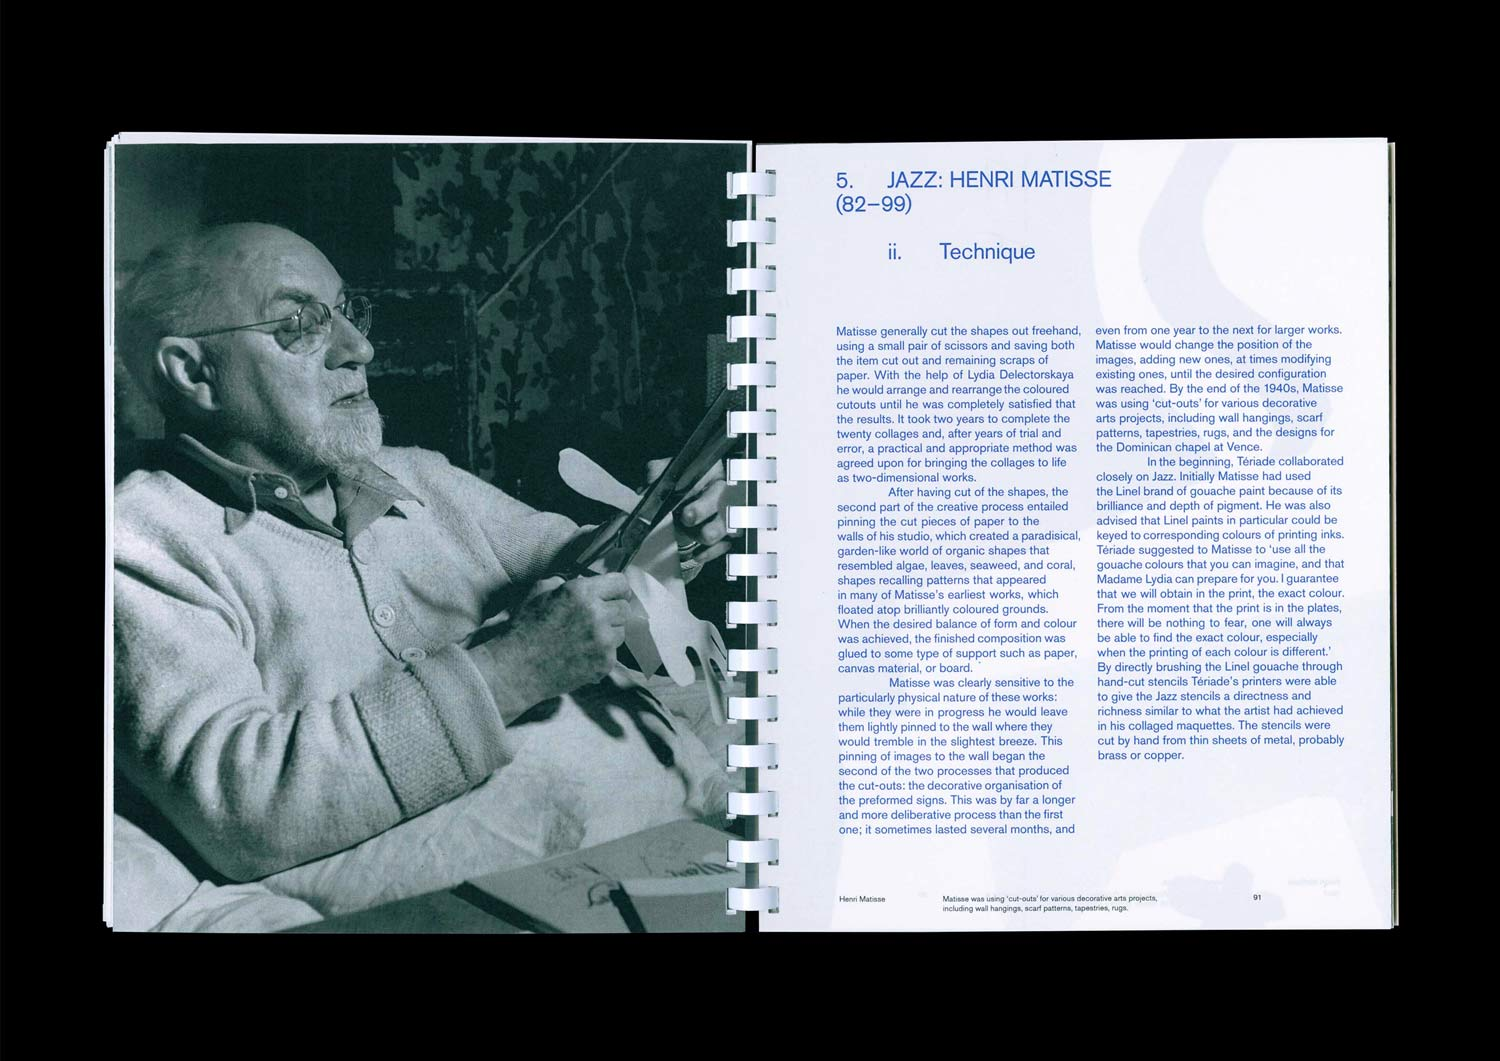 Inside spread of the publication, Henri Matisse: The Cut-Outs